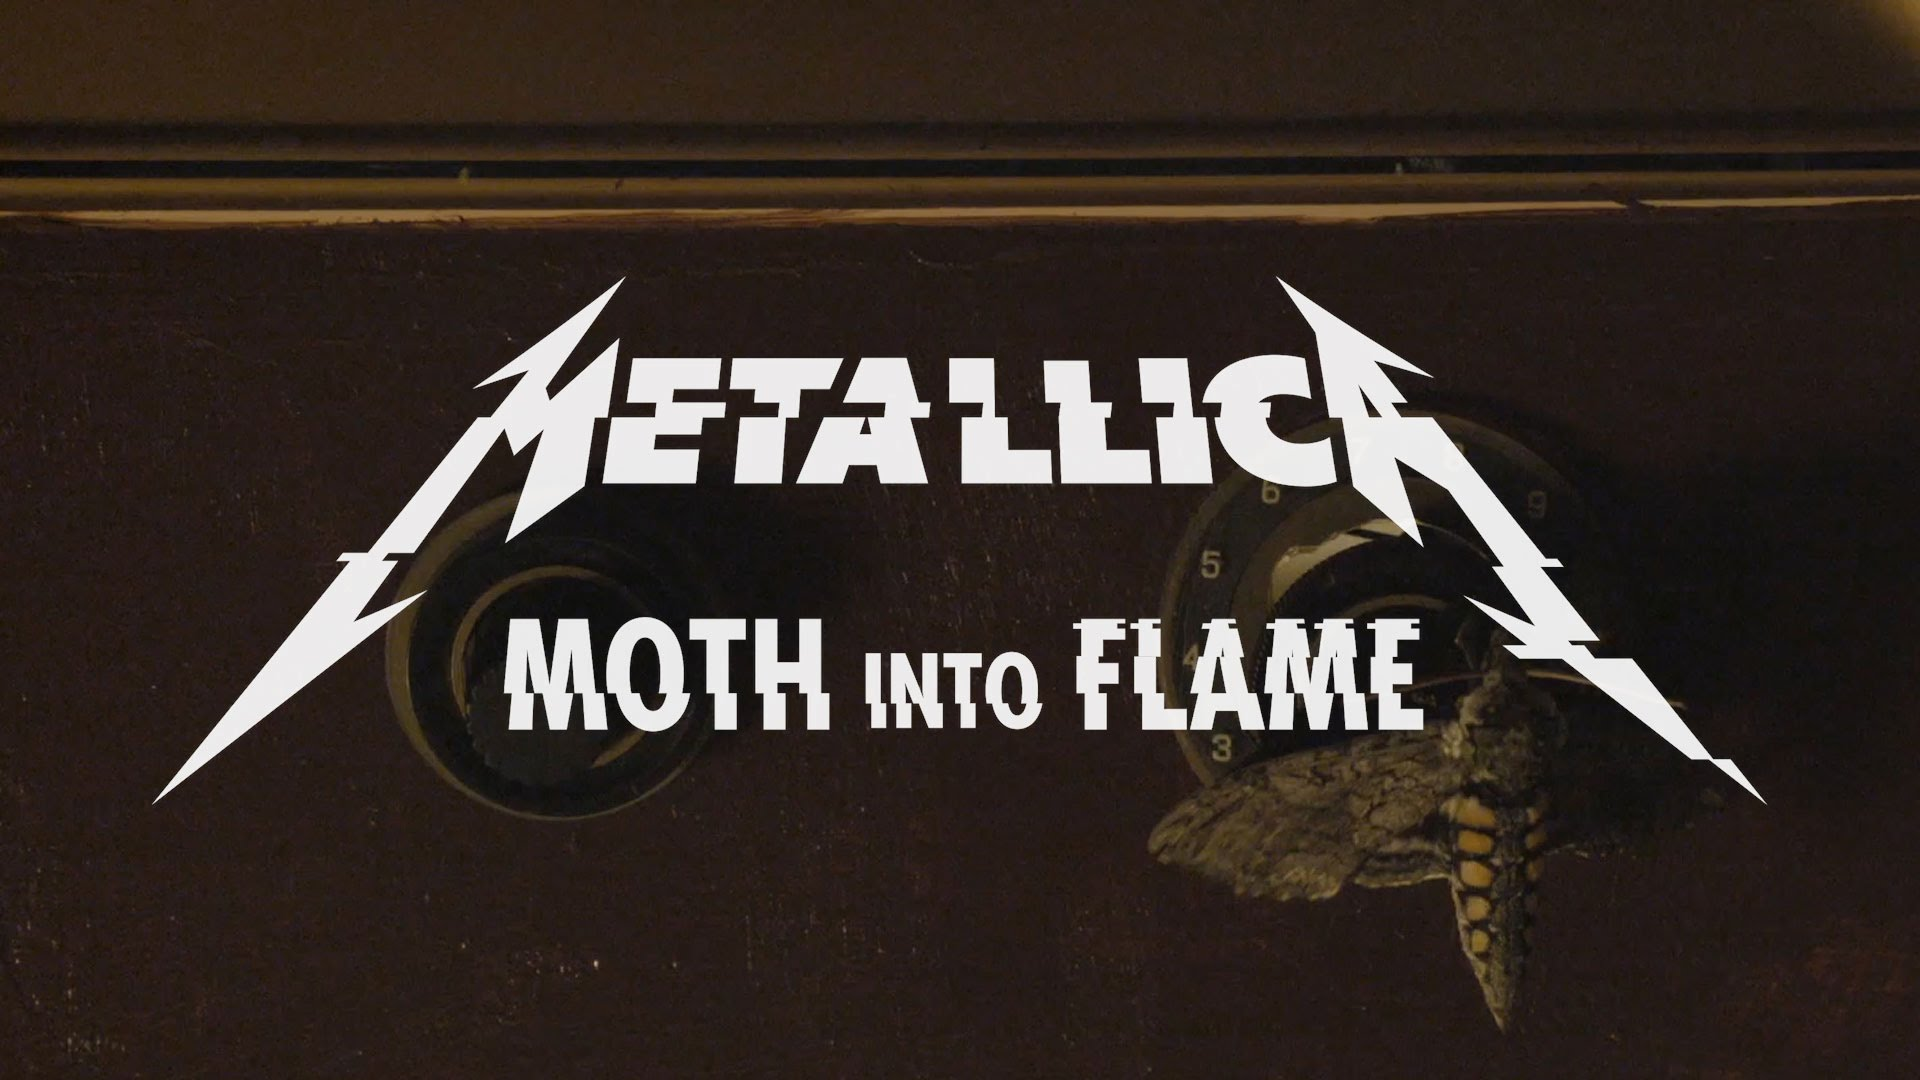 Metallica accused of plagiarism